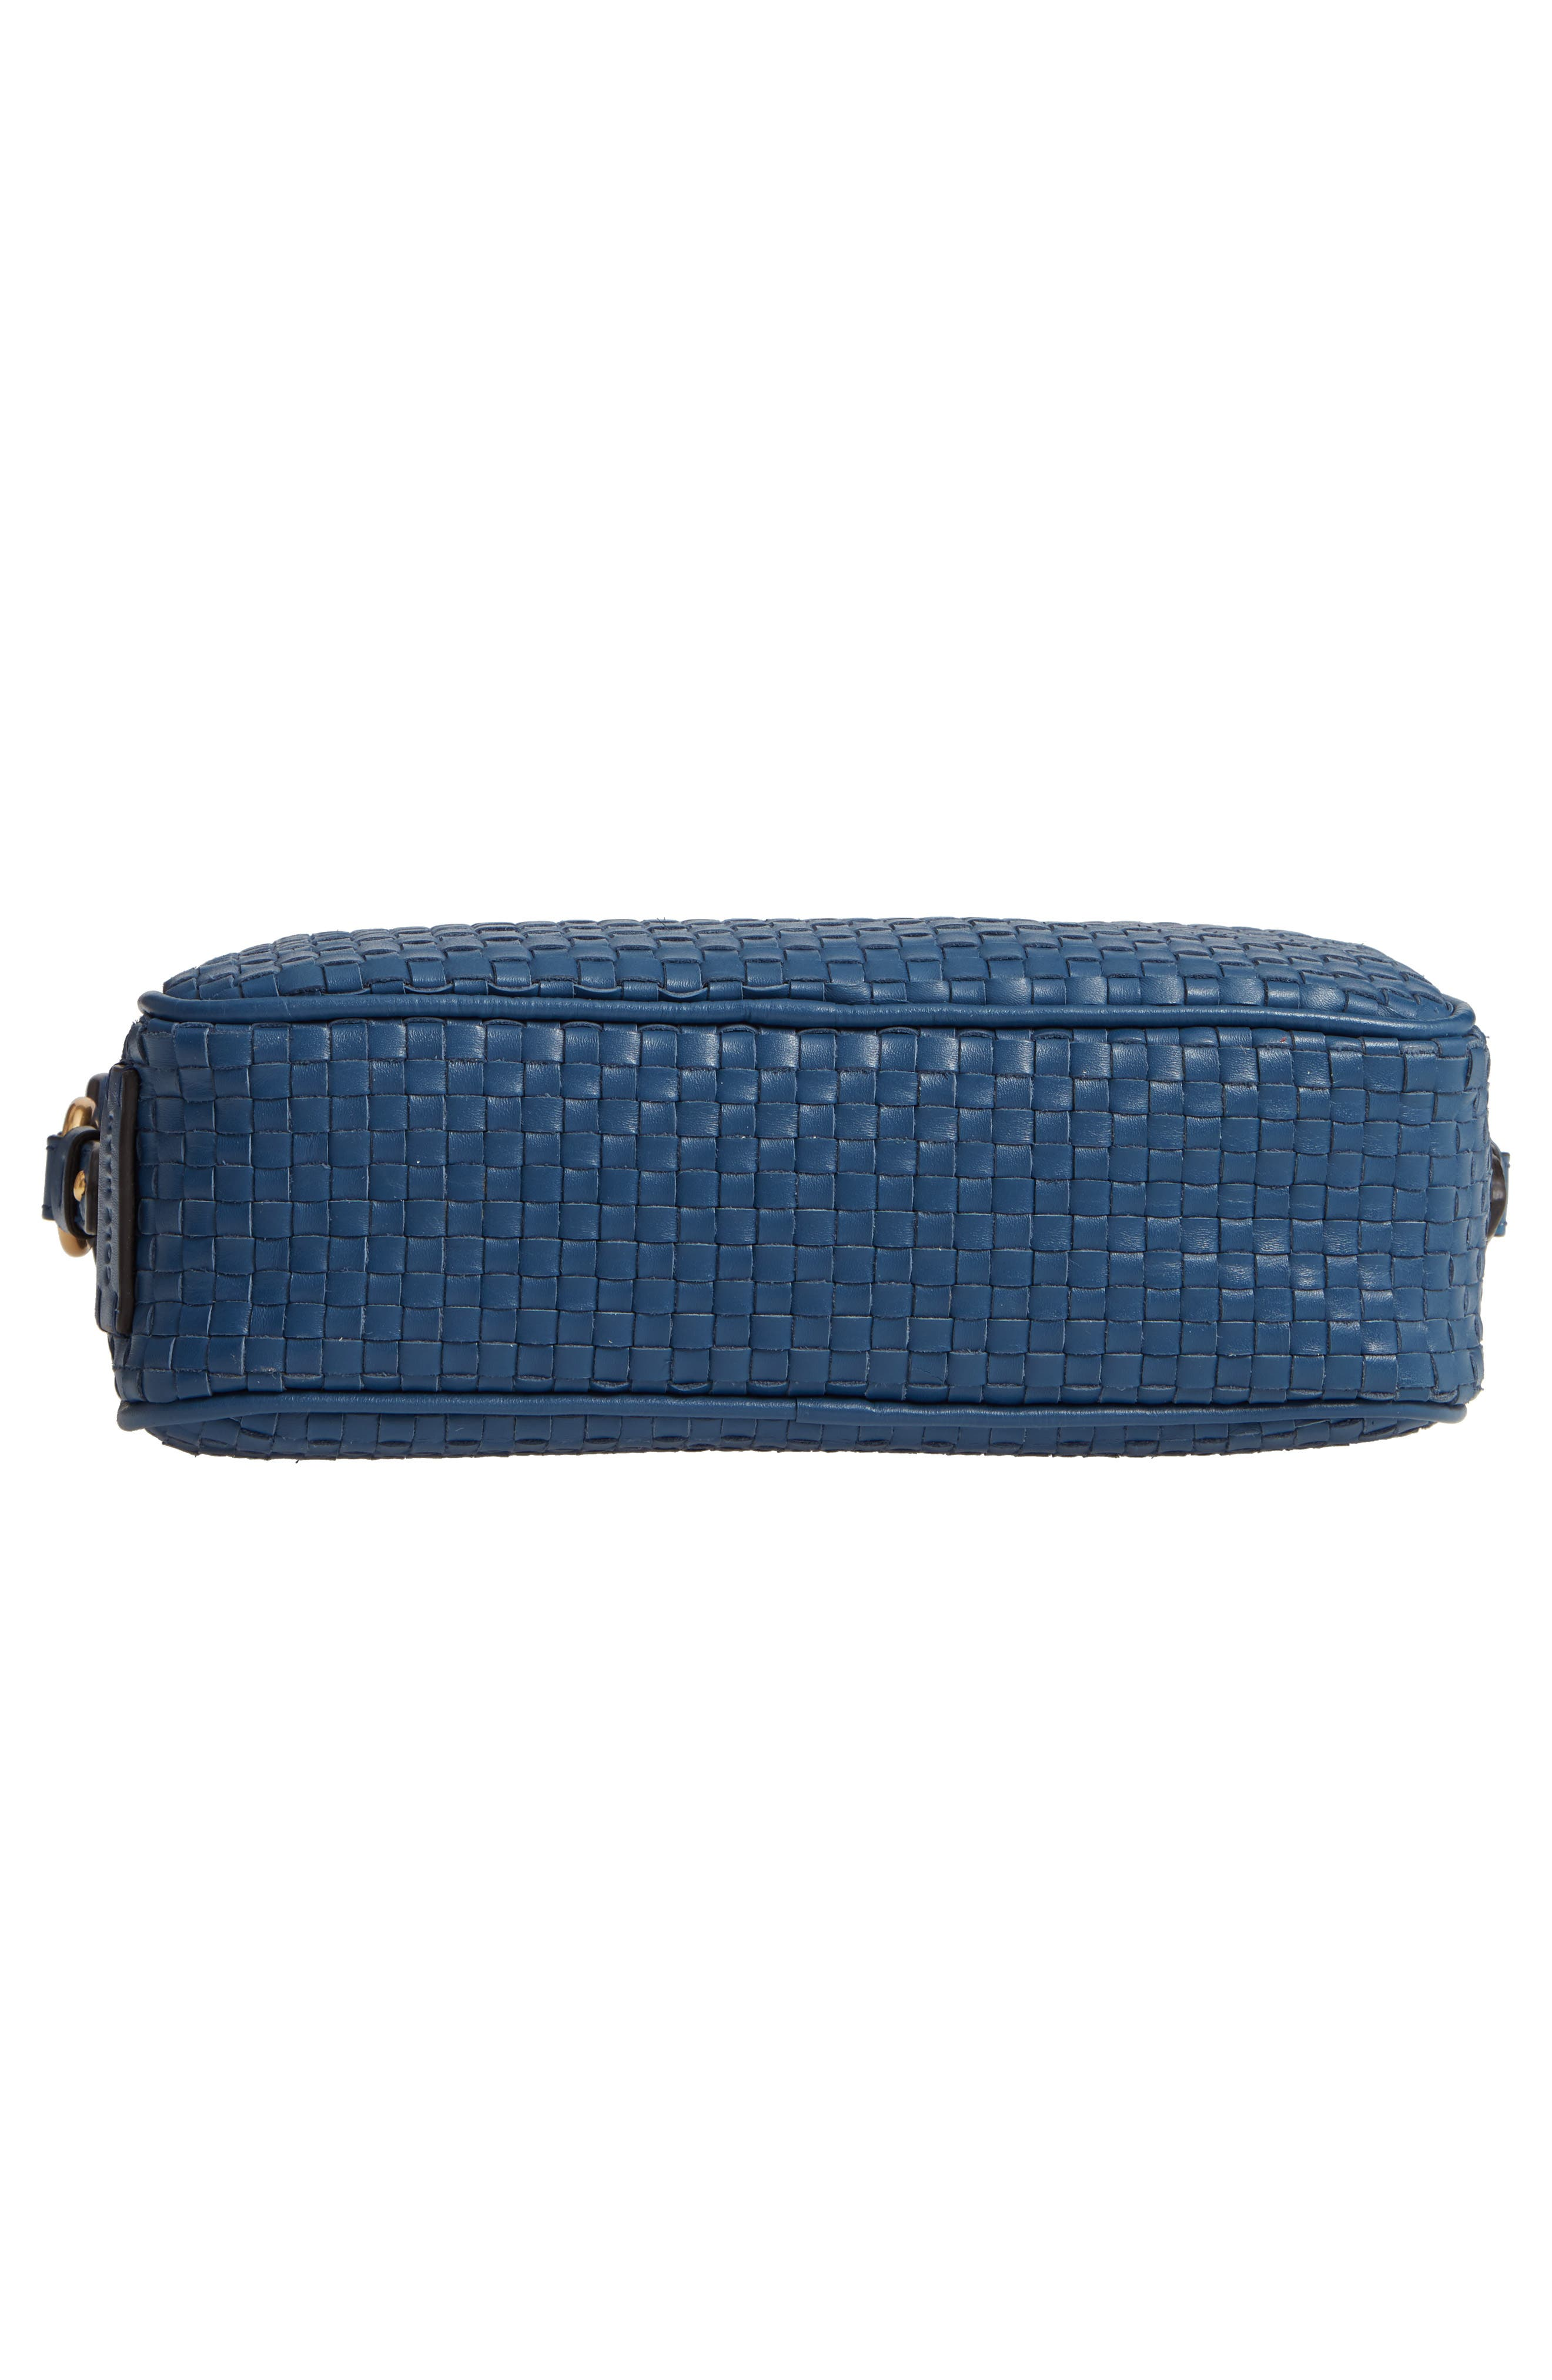 Zoe RFID Woven Leather Camera Bag,                             Alternate thumbnail 4, color,                             Navy Peony